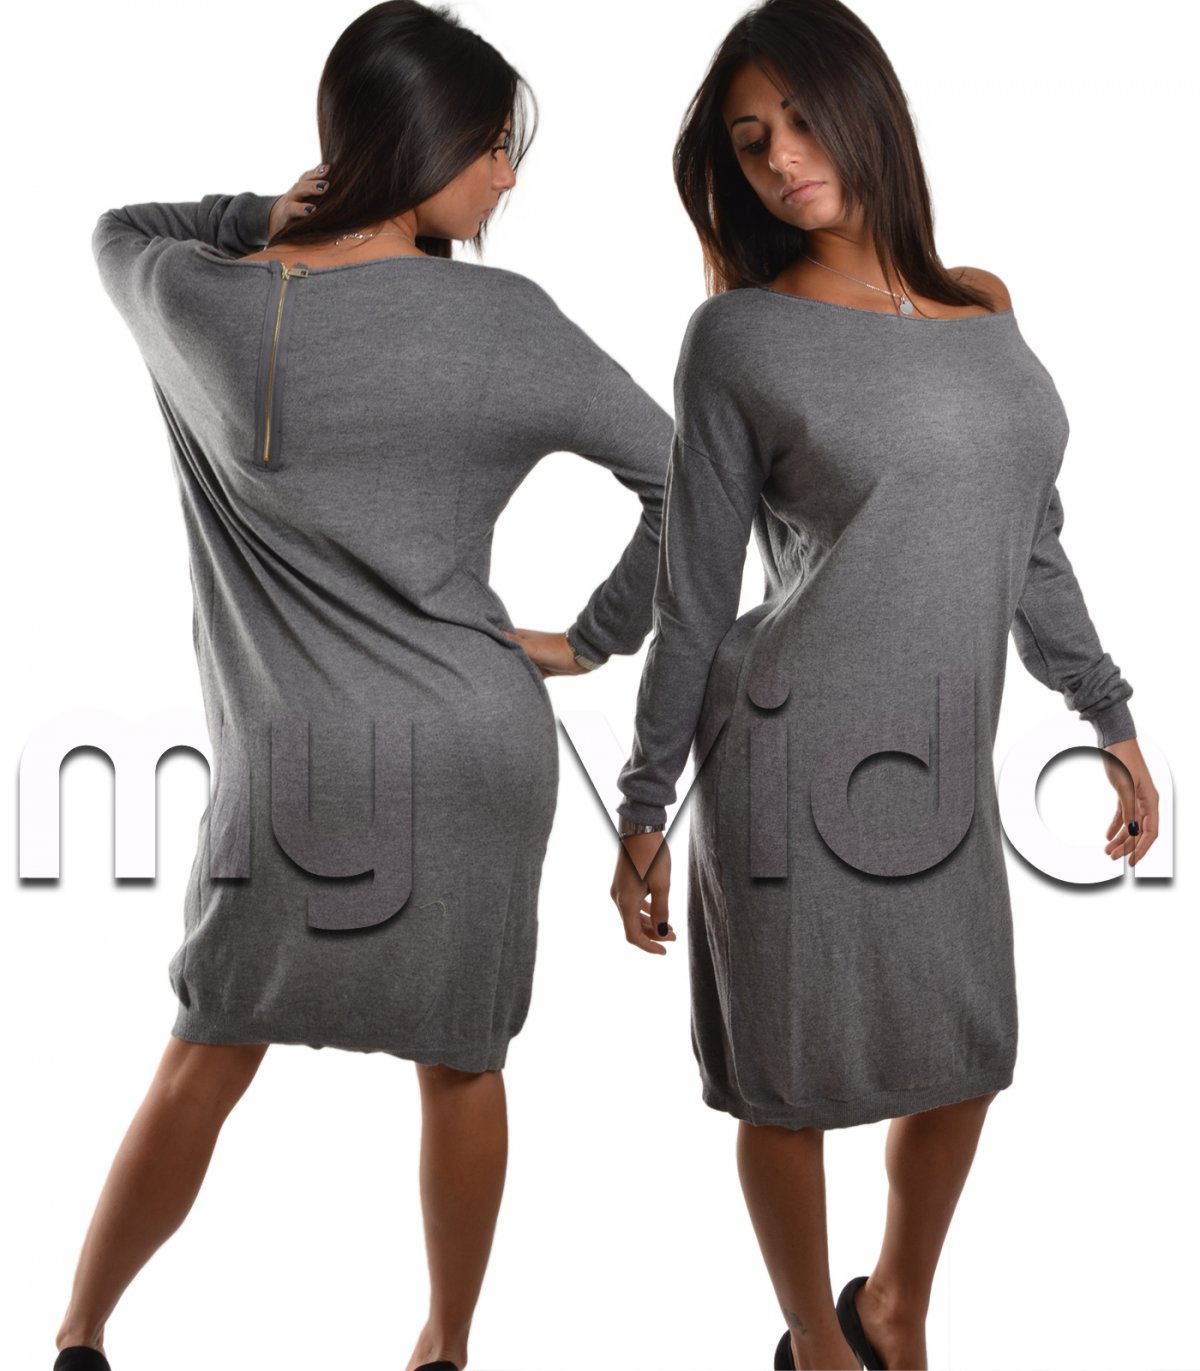 new style 68681 60c4f Woman's collection dress maglione donna girocollo casual ...